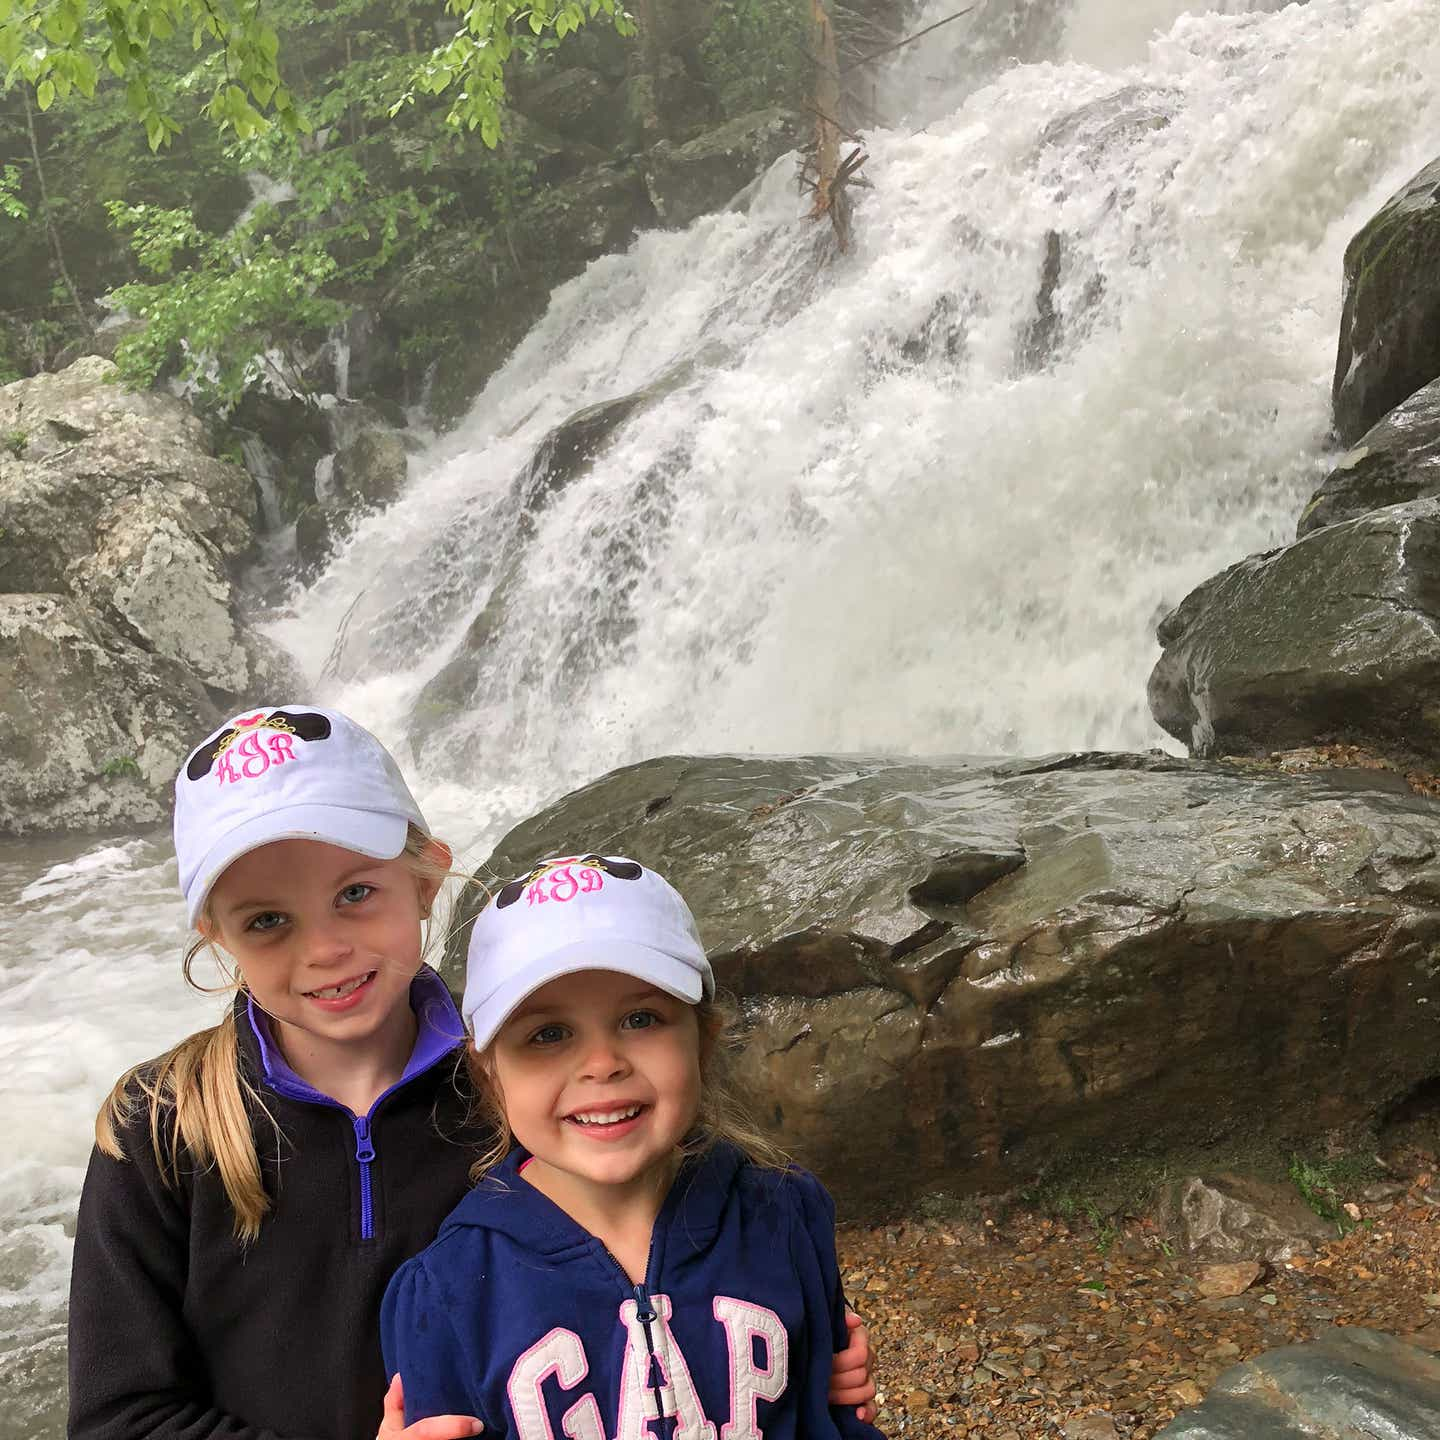 Author, Chris Johnstons' daughters, Kyndall (left), and Kyler (right) pose near the Dark Hollow Falls located at Shenandoah National Park in Virginia.